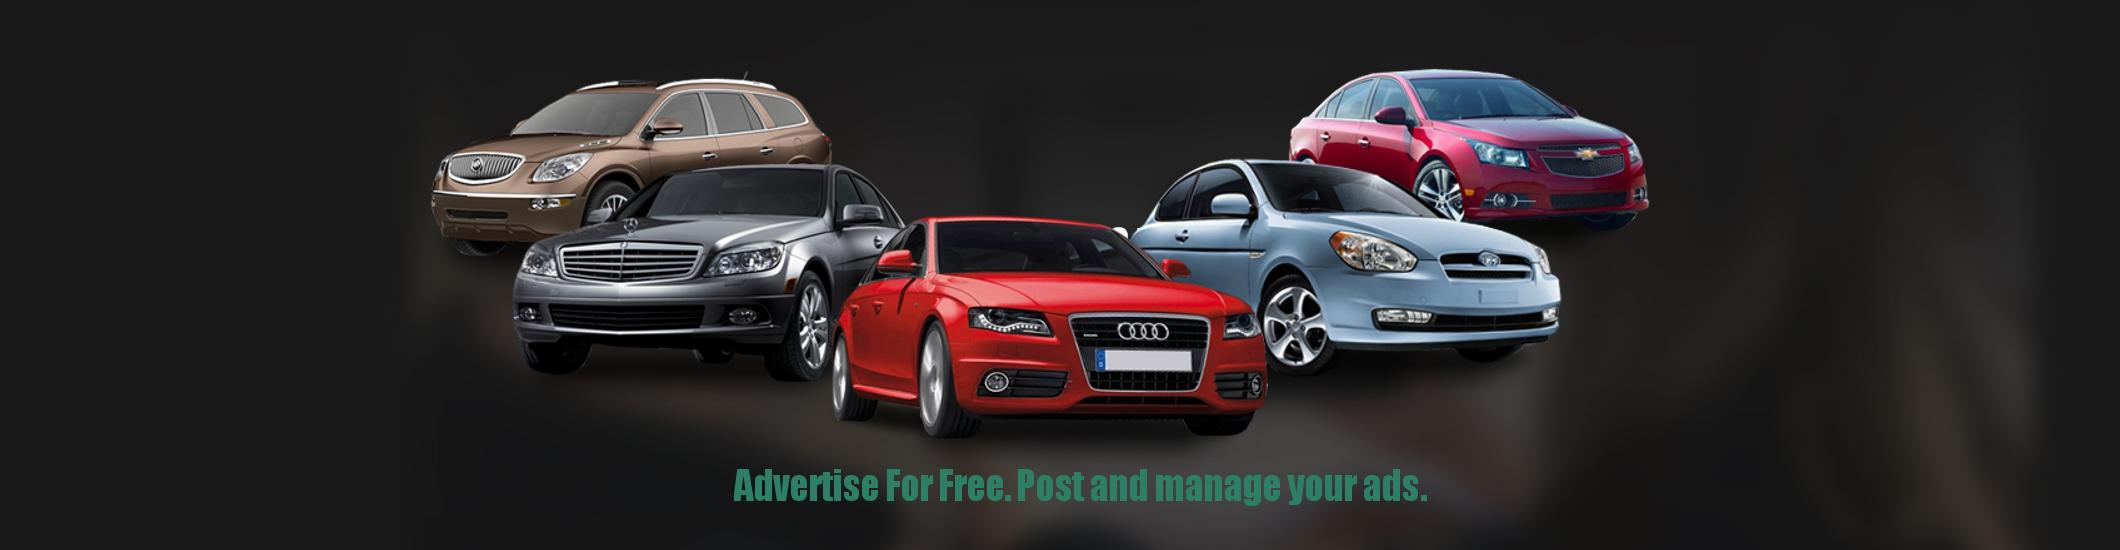 CarsACT - FREE classified to buy and sell you cars online